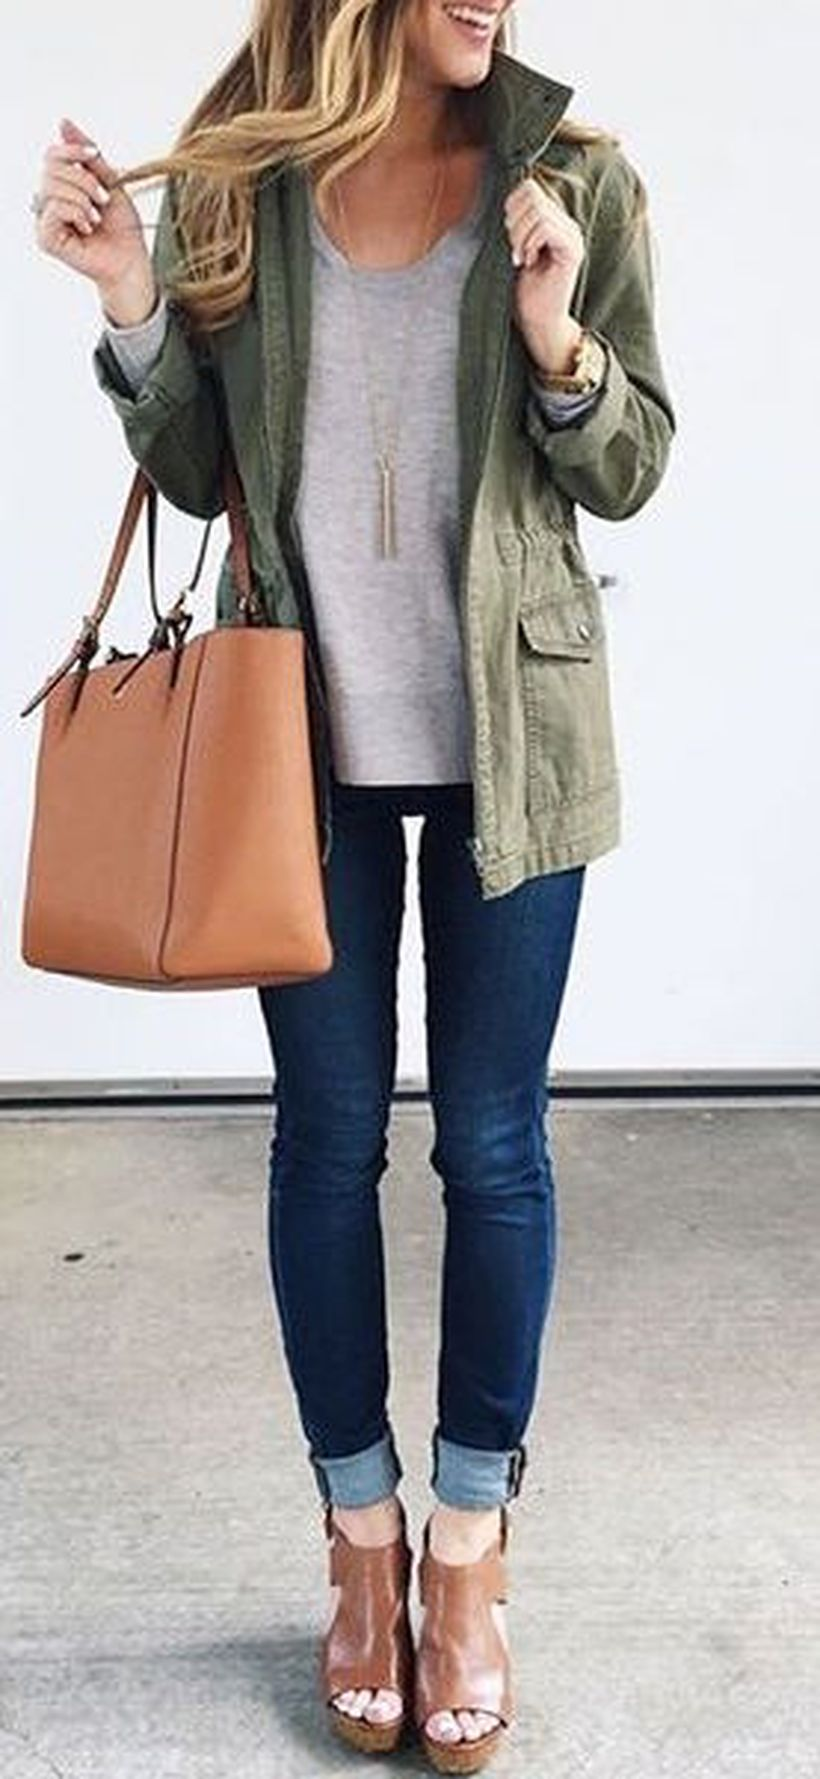 2017 fall fashions trend inspirations for work 19